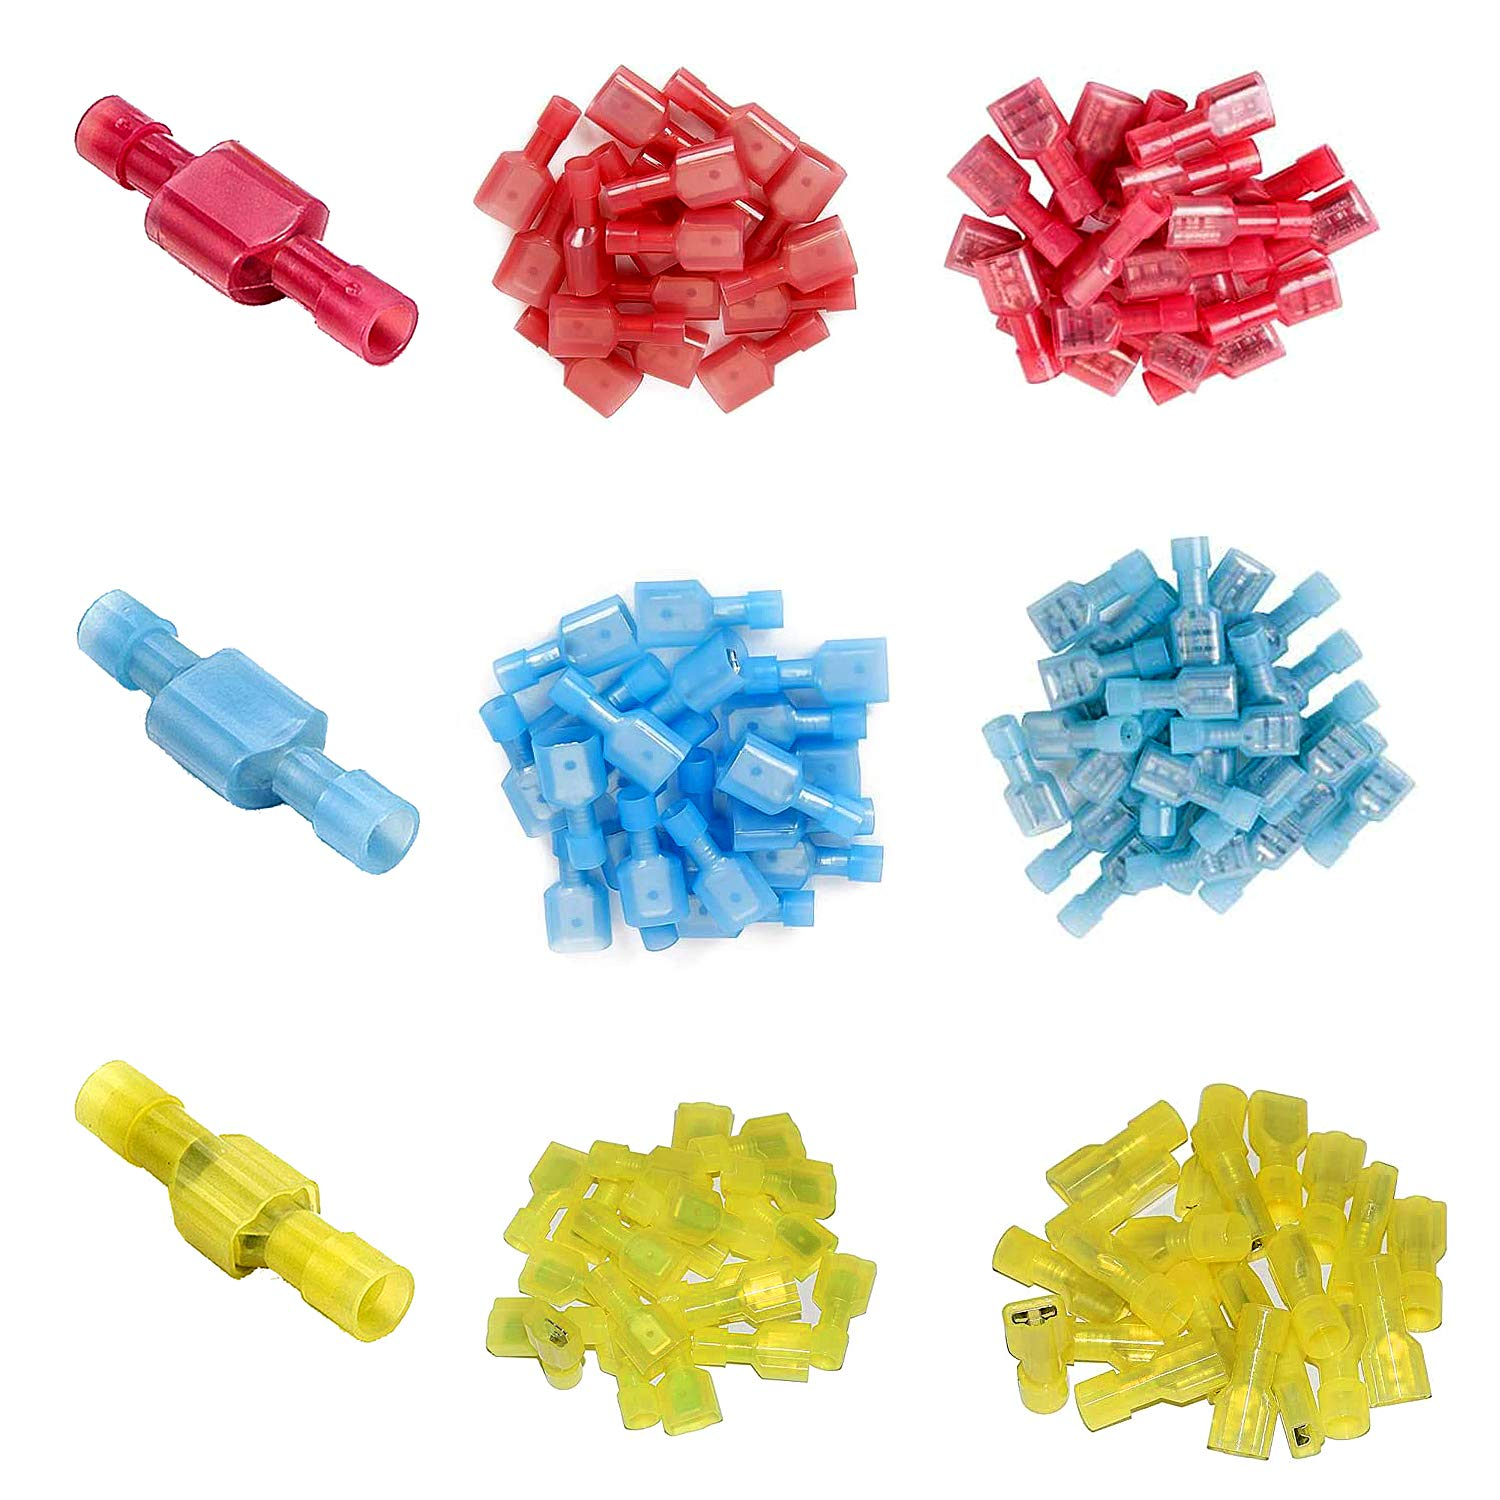 120 Pcs Male Female Wire Connectors - MuHize Nylon Fully Insulated Spade Connector Assortment Quick Disconnect Wire Crimp Terminal Kit